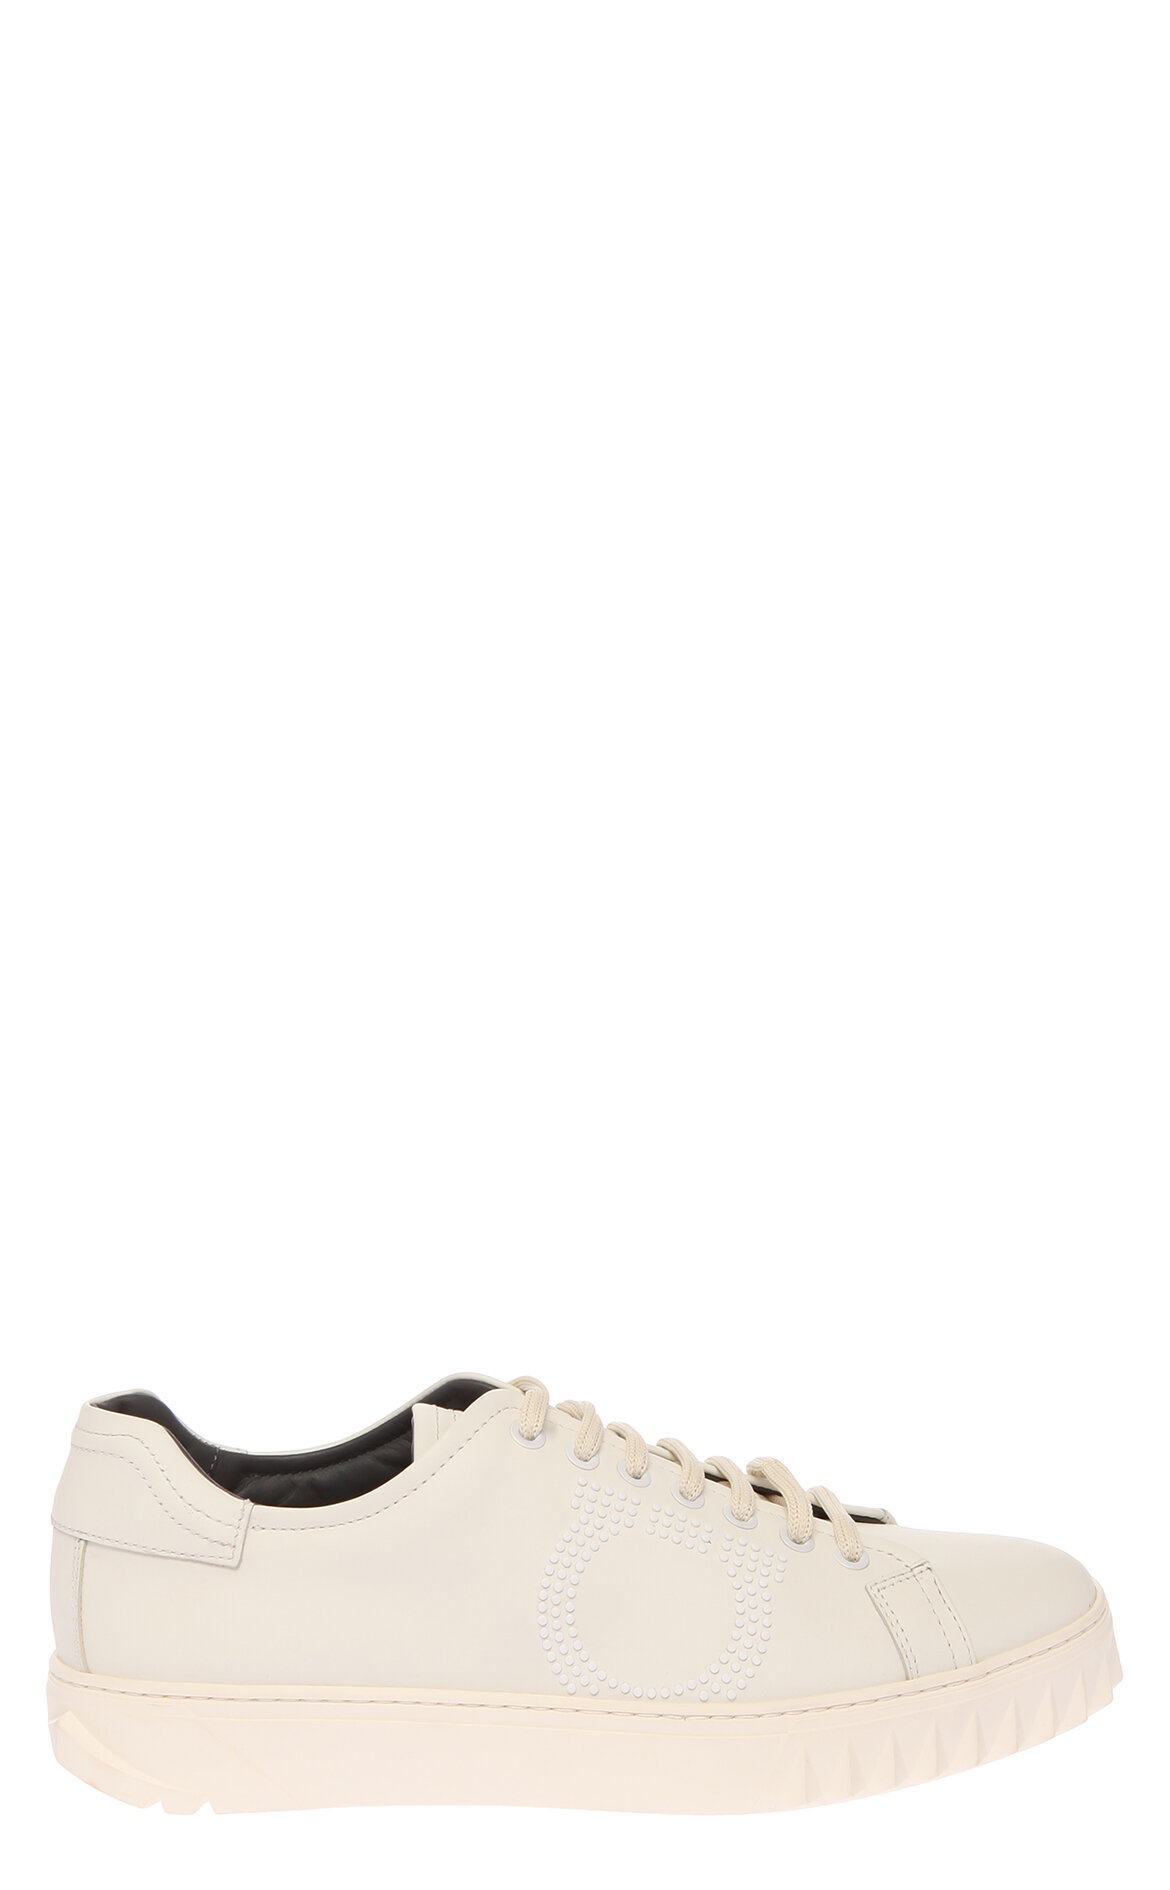 Salvatore Ferragamo Sneakers